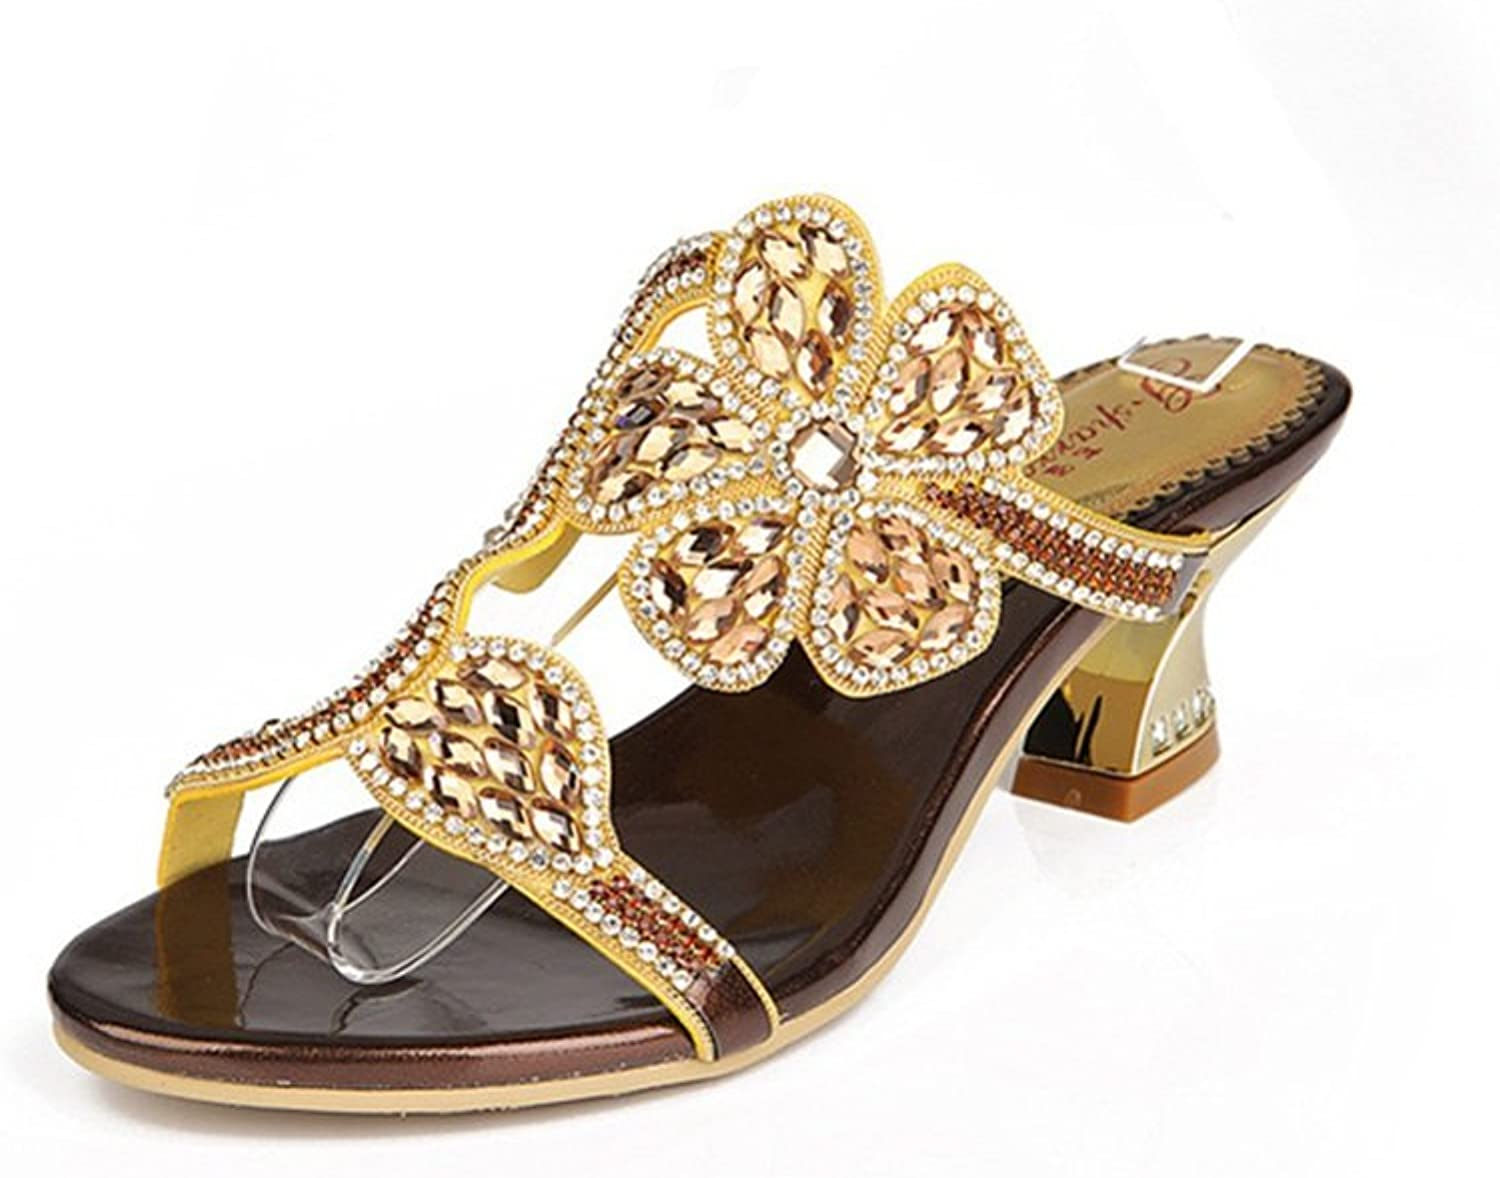 Women's shoes New Comfort Novelty Sandals Low Heel Rough Heel Open Toe Rhinestone for Party & Evening Spring Summer New